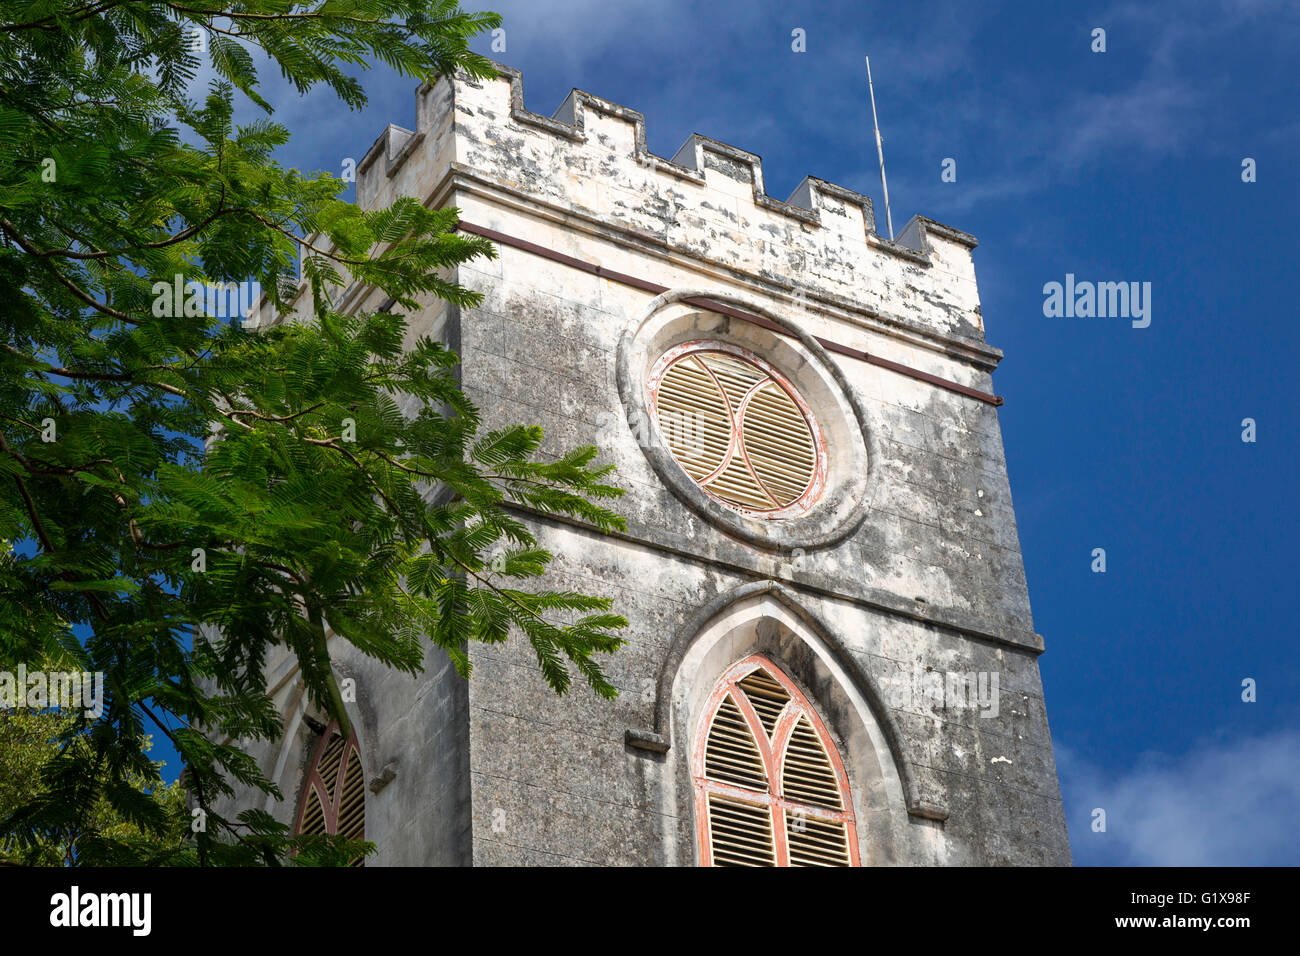 Tower of Saint Johns Parish Church, Barbados, West Indies - Stock Image